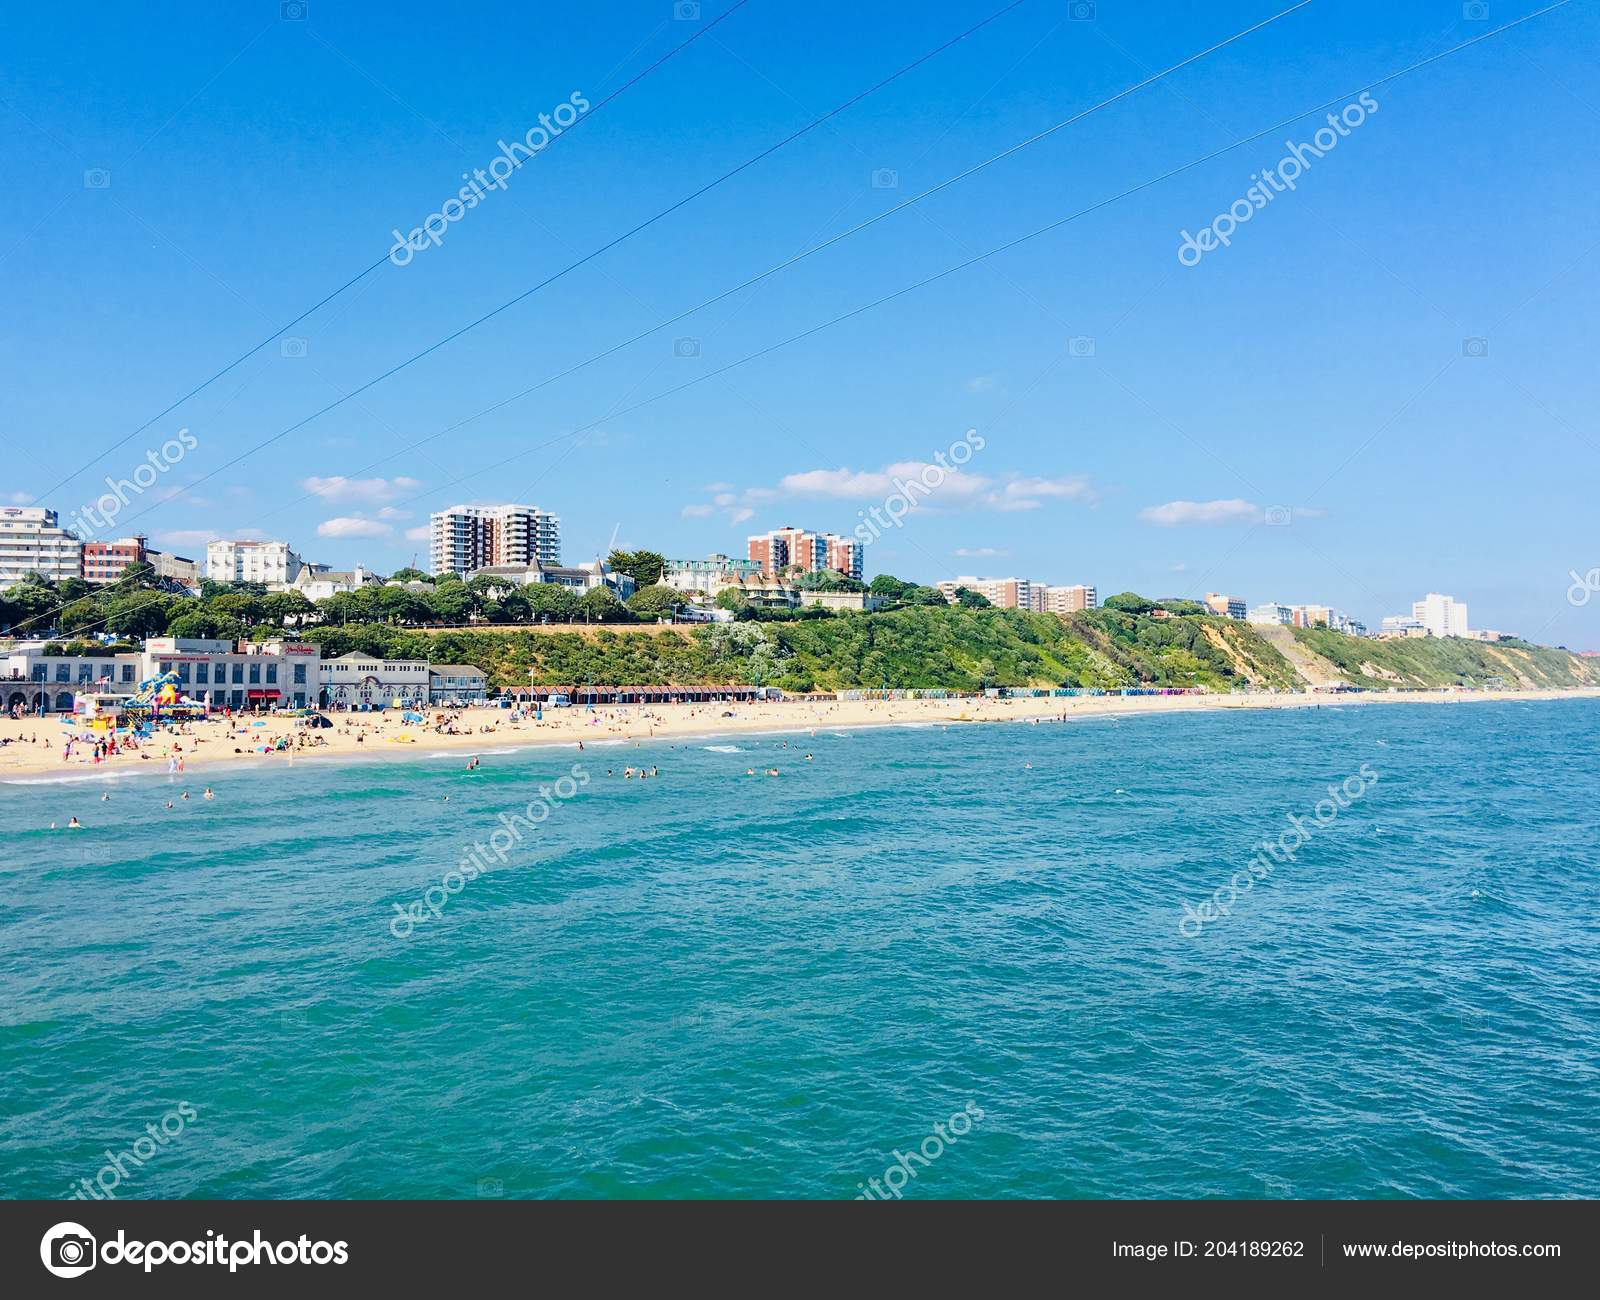 where is bournemouth england